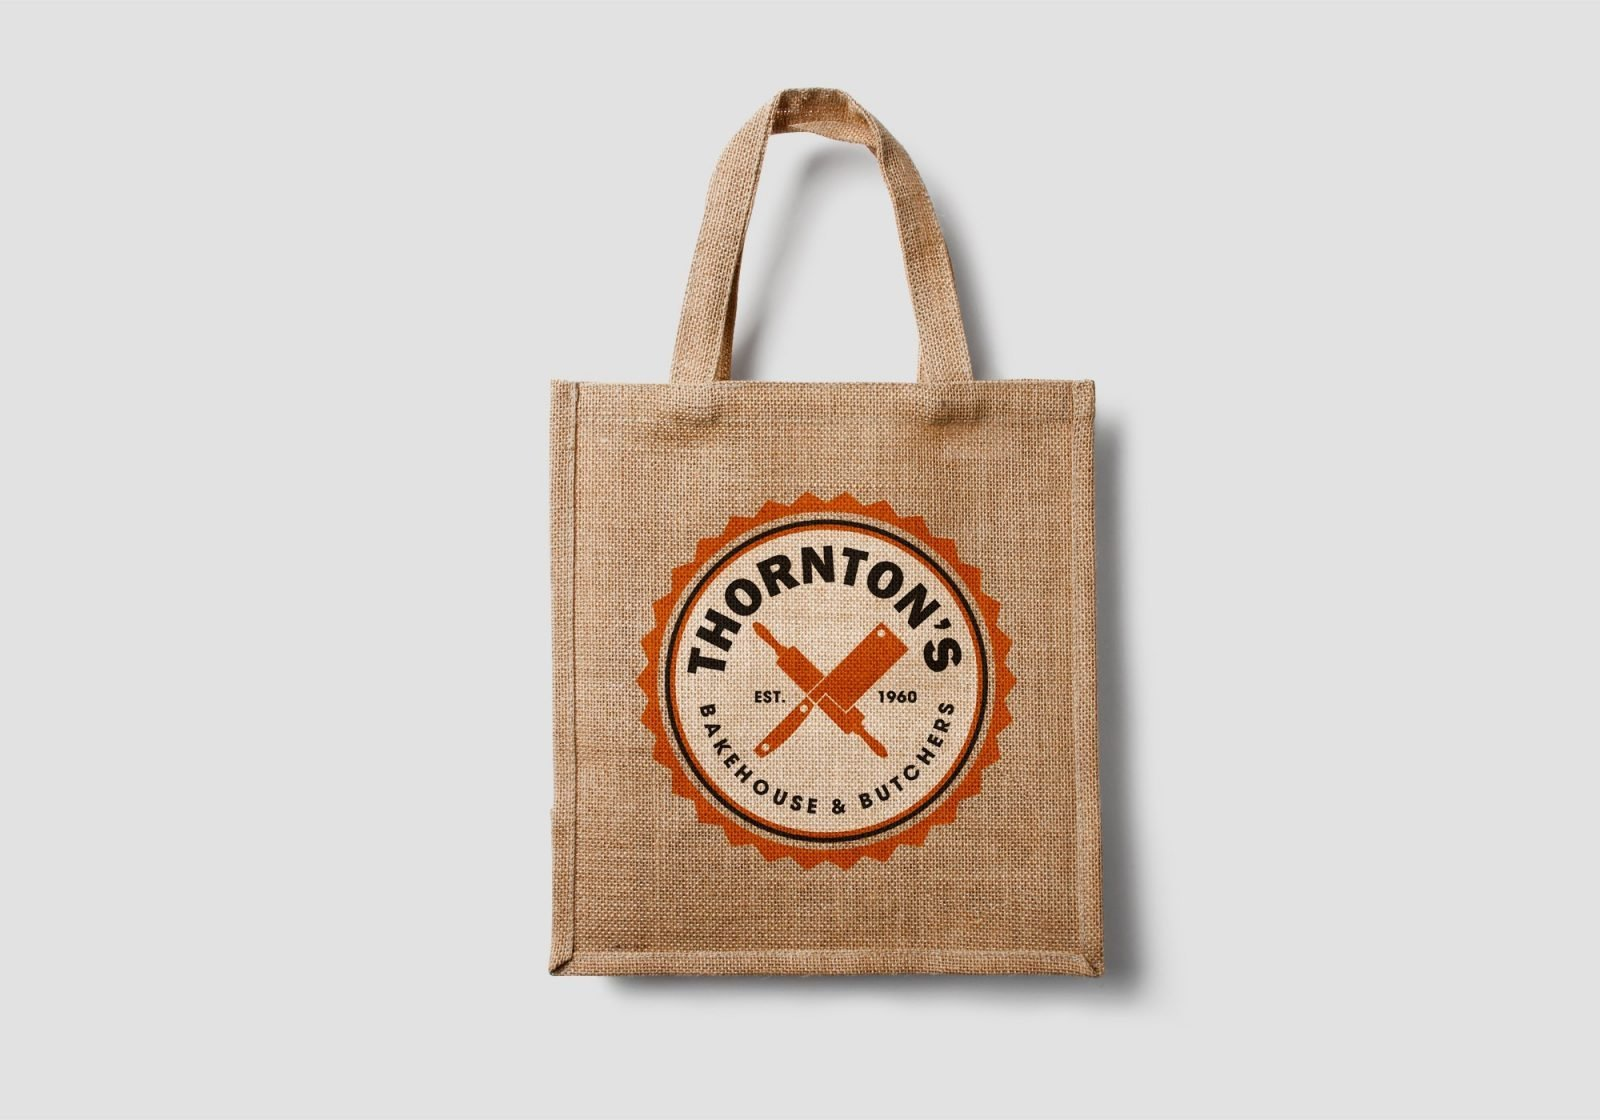 A hessian bag design for Thornton's Butchers and Bakehouse showing the logo